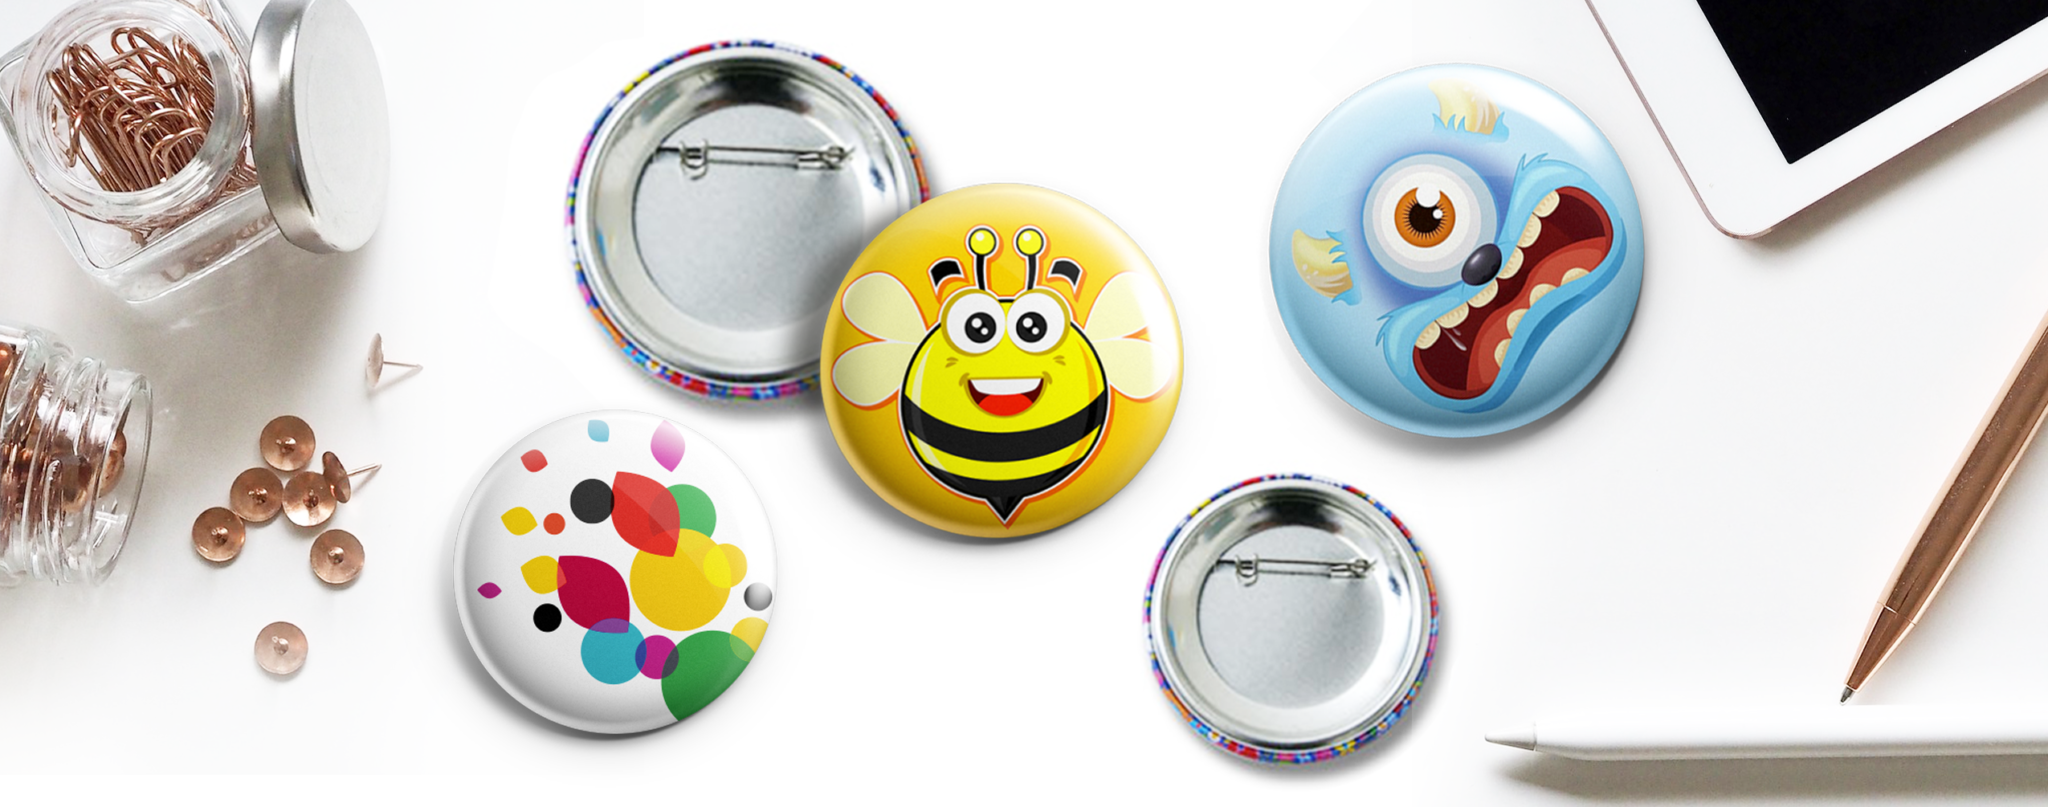 custom button pins design and printing services Australia